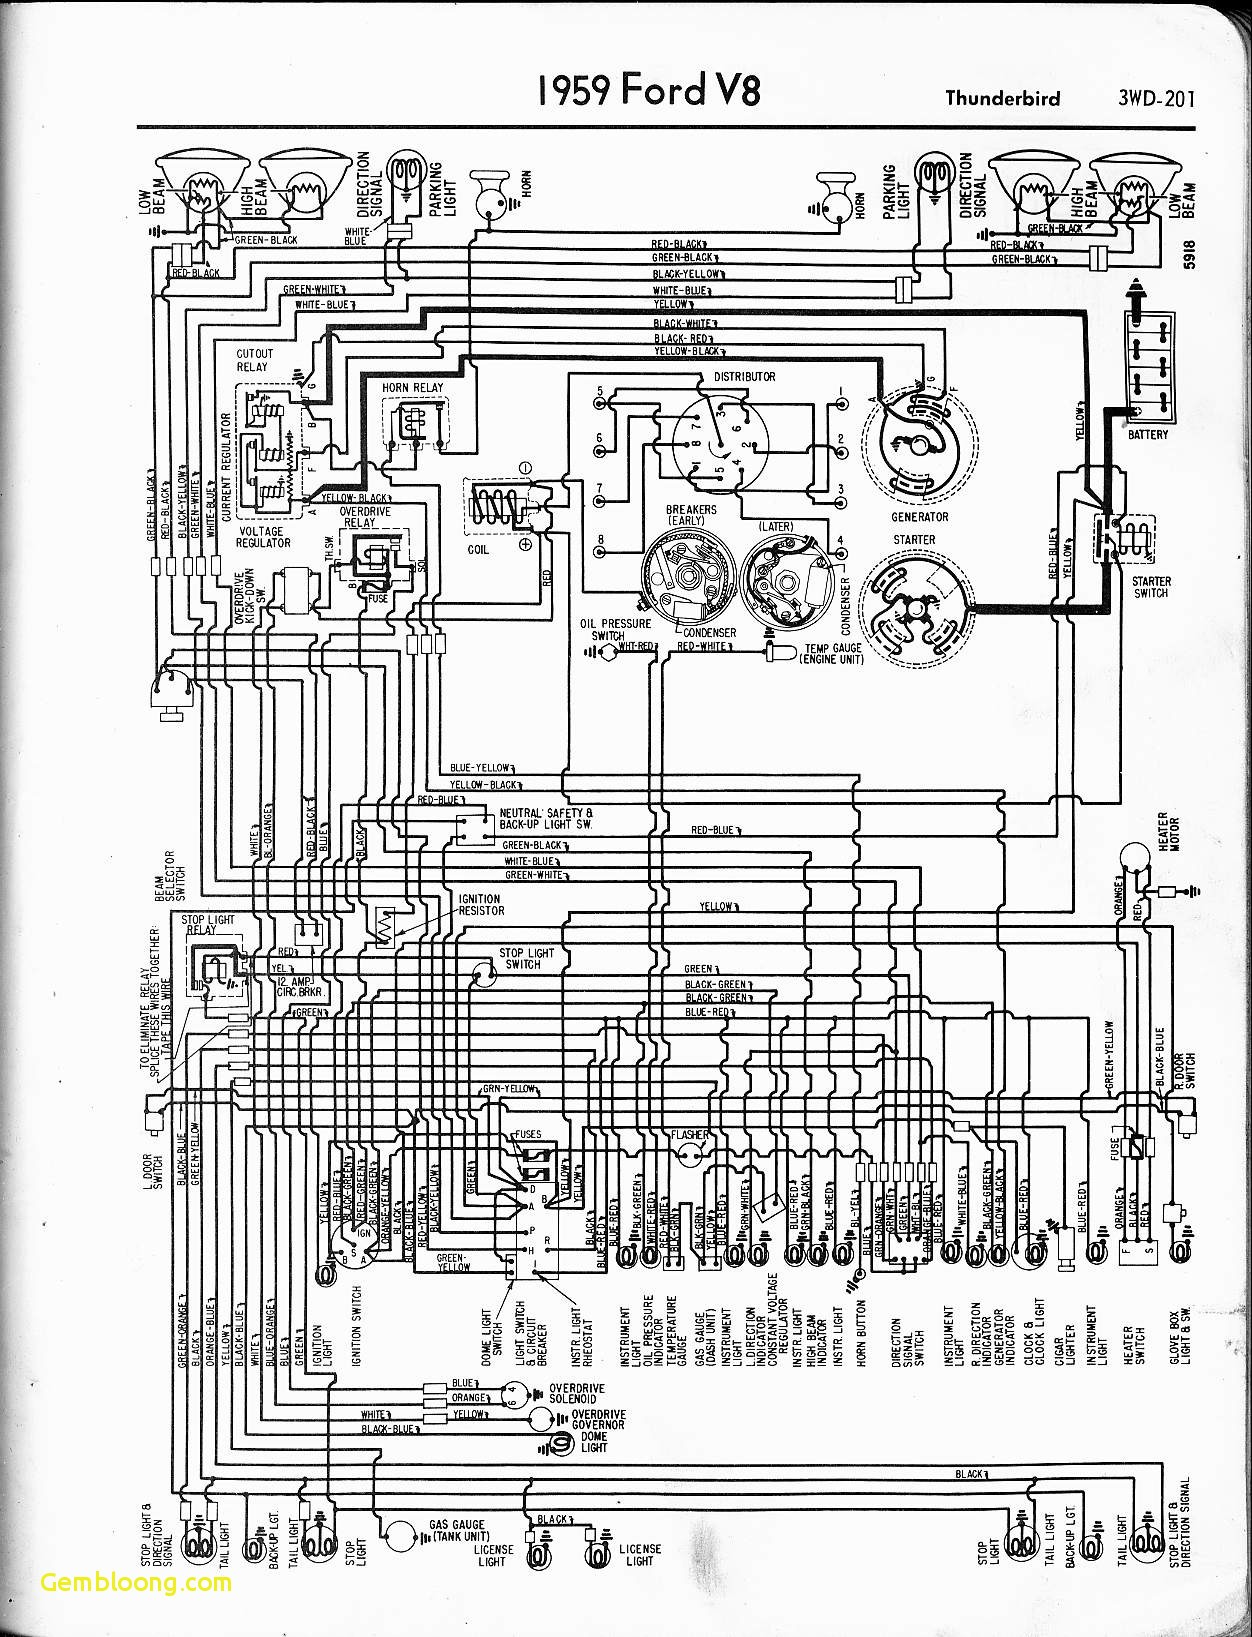 W Engine Diagram Download ford Trucks Wiring Diagrams ford F150 Wiring Diagrams Best Of W Engine Diagram